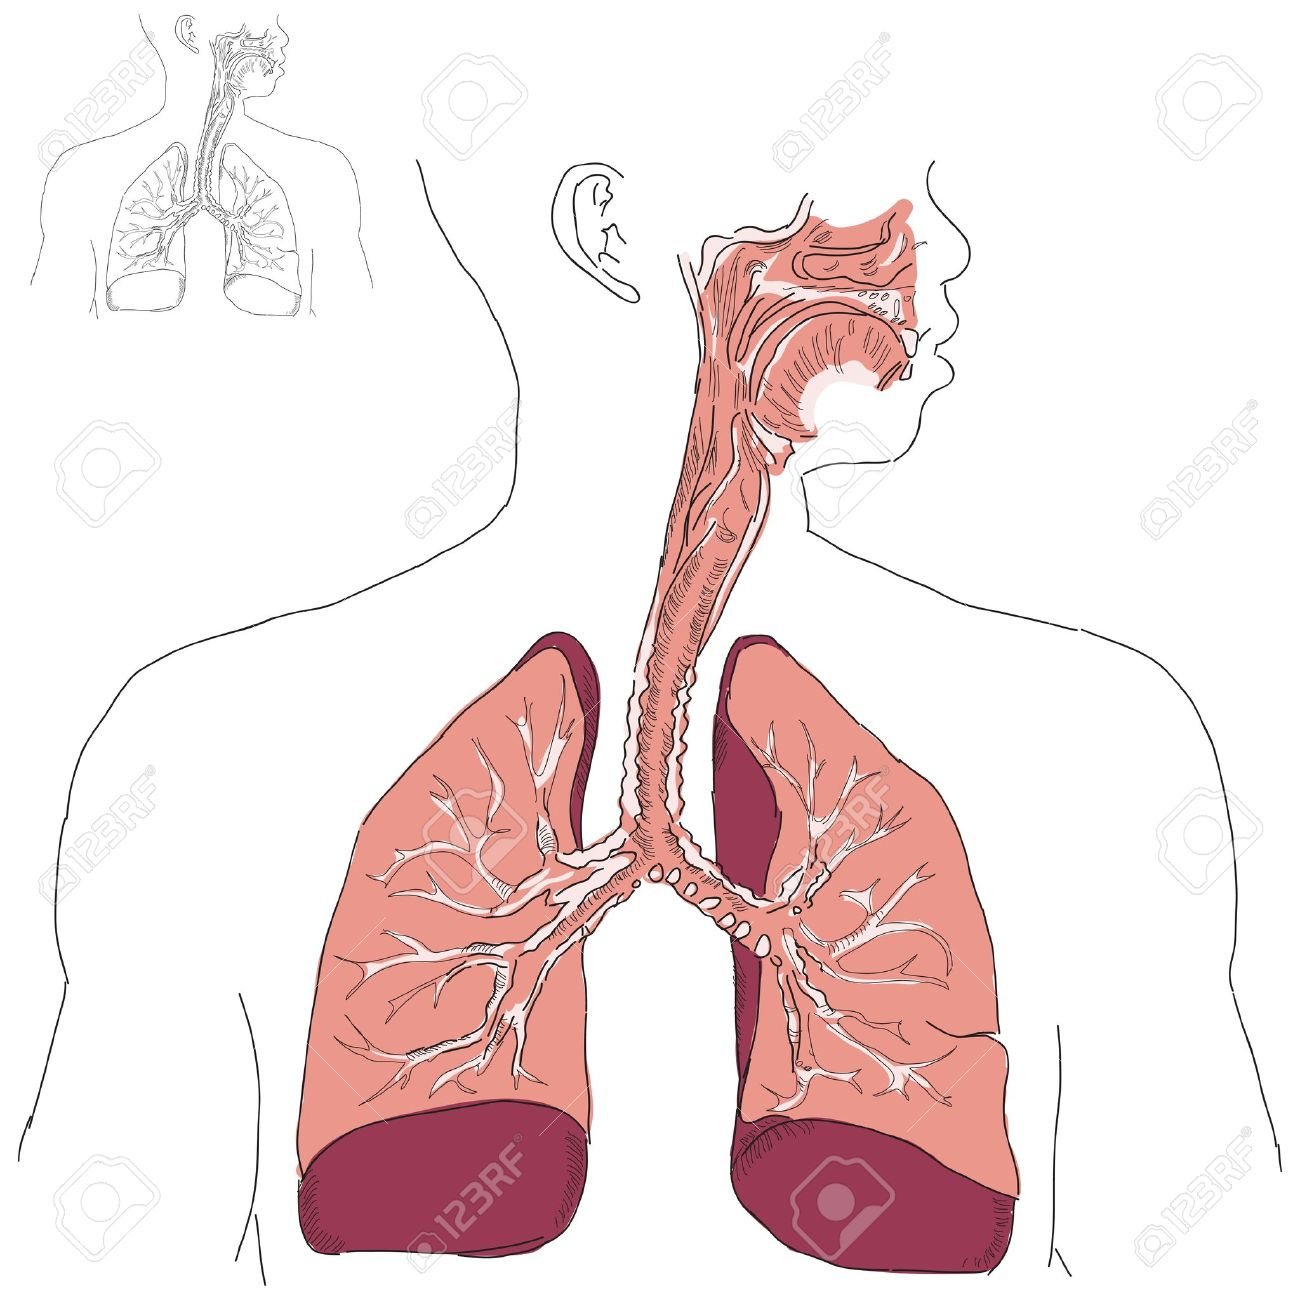 Respiratory System And Actinomycosis In Humans. Vector.